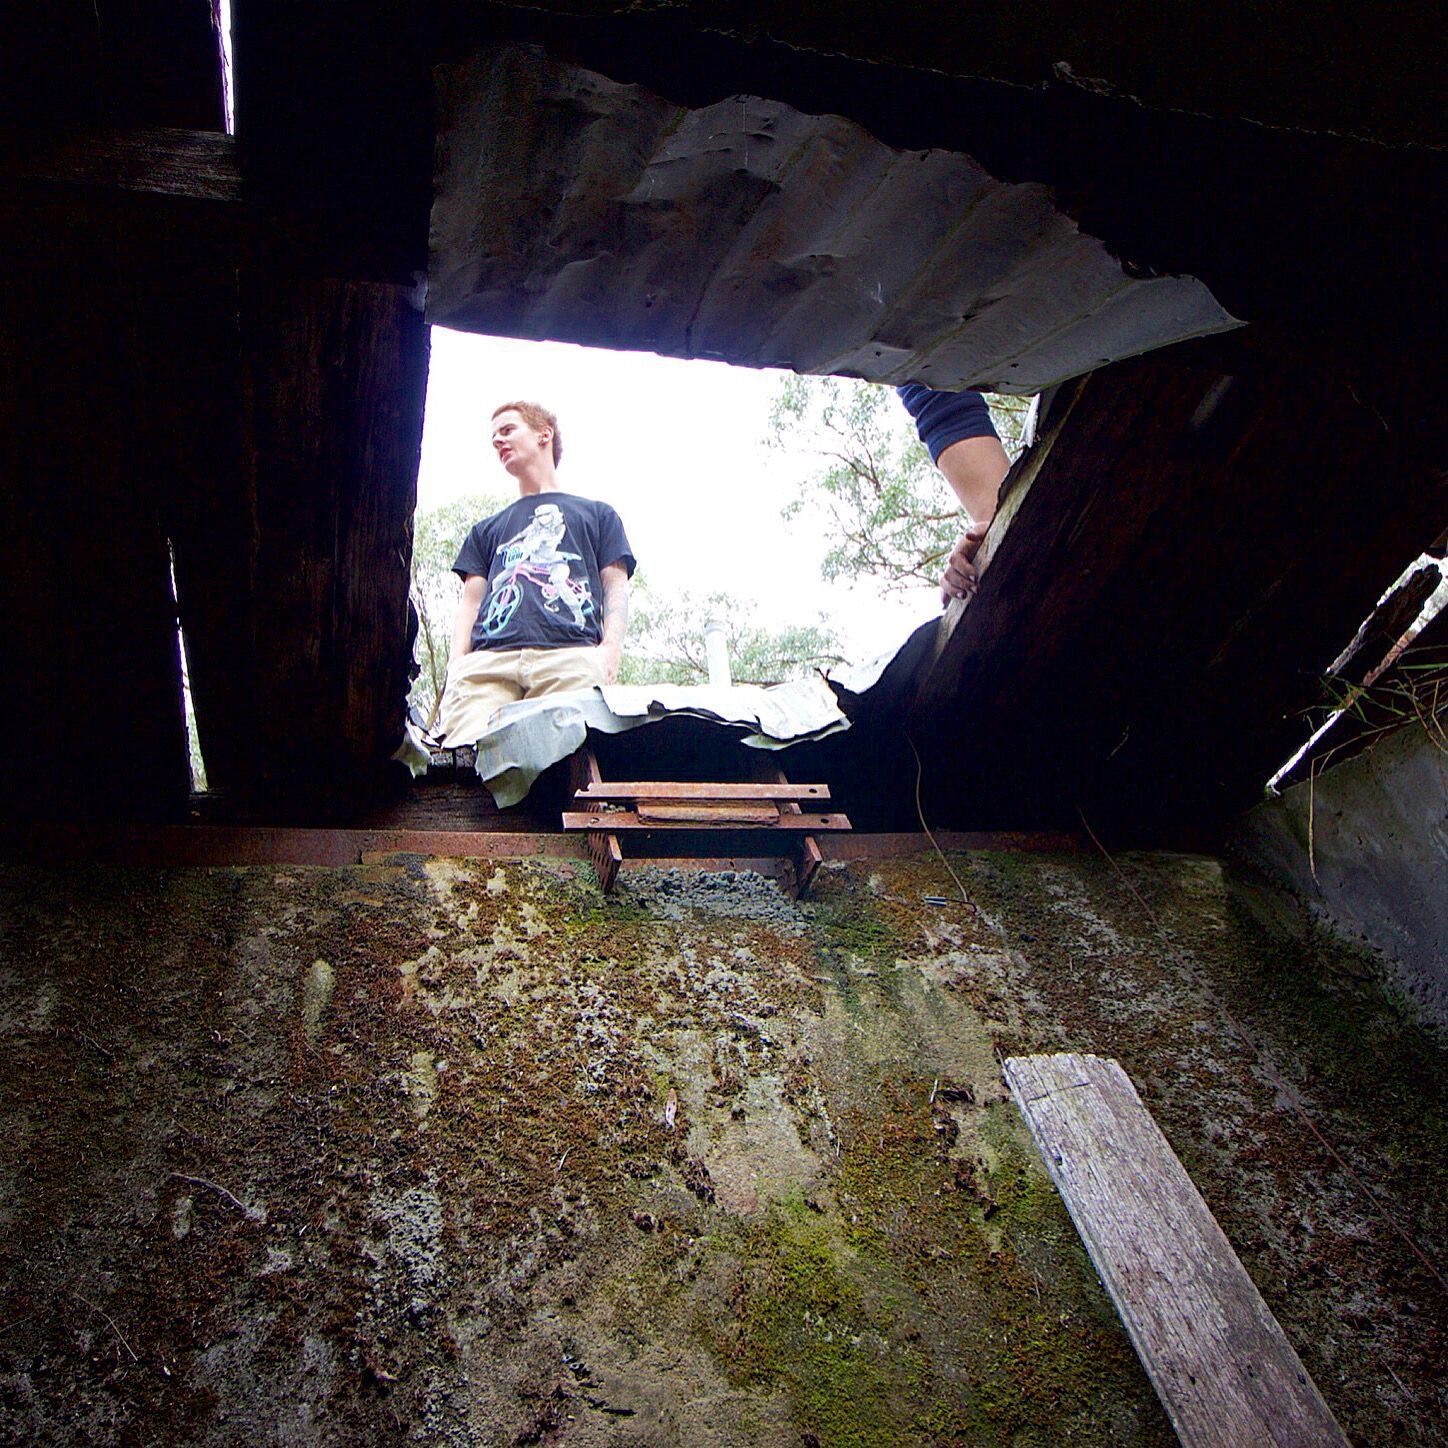 Exploring An Old Mine Near #Ballarat #disused #abandoned